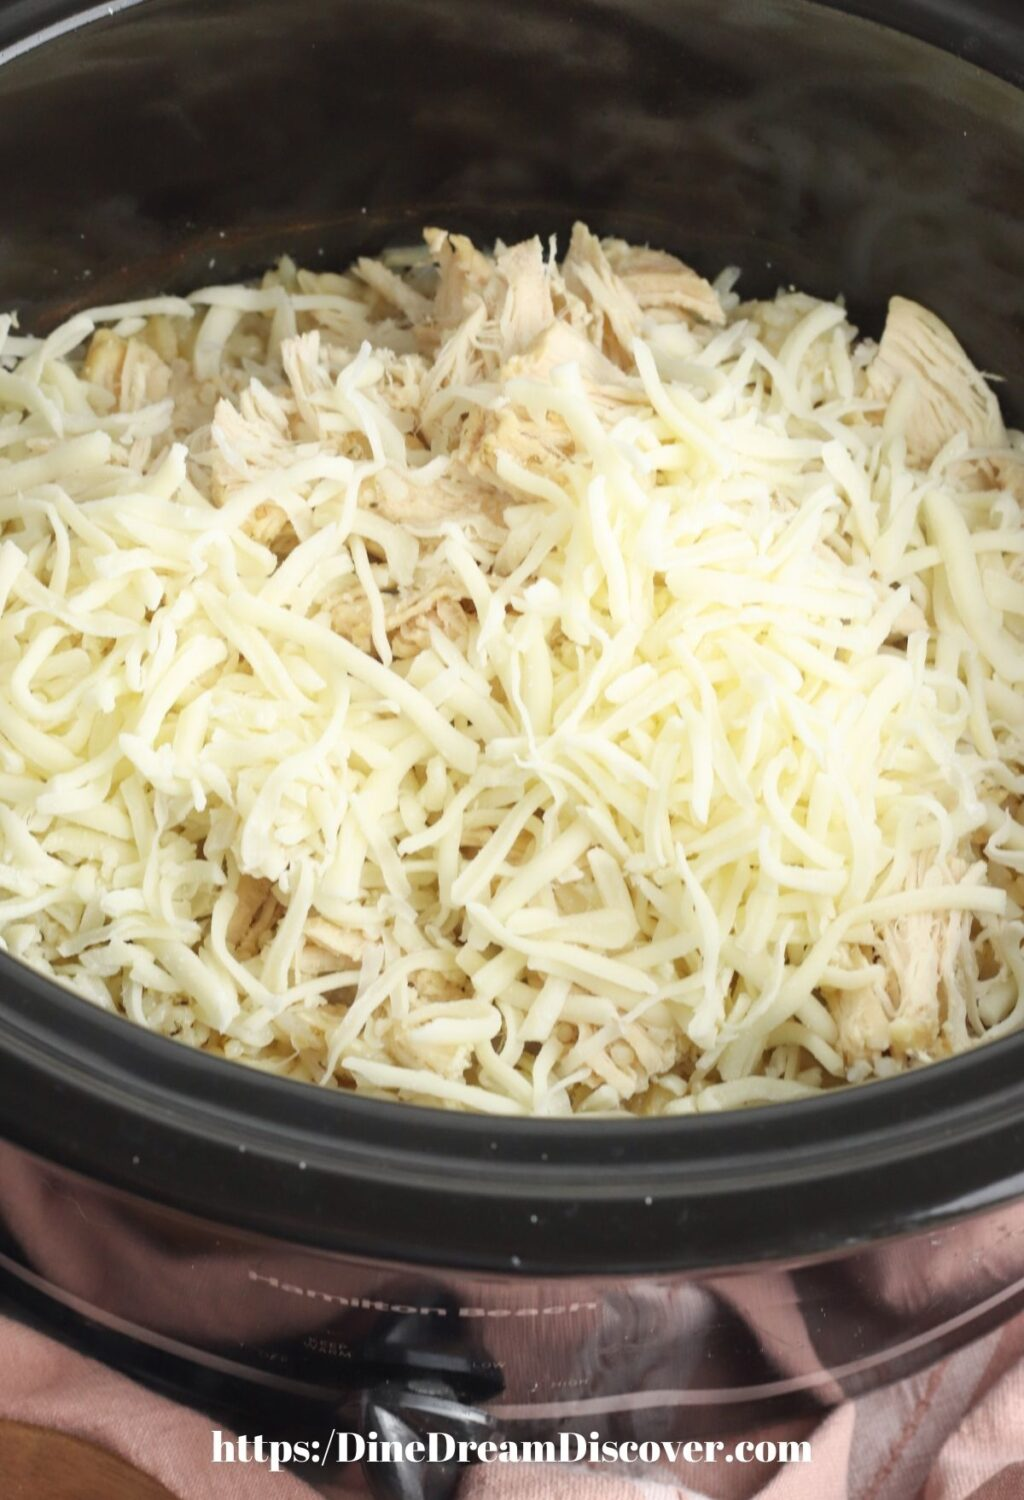 CHICKEN BREASTS COVERED WITH CHEESE